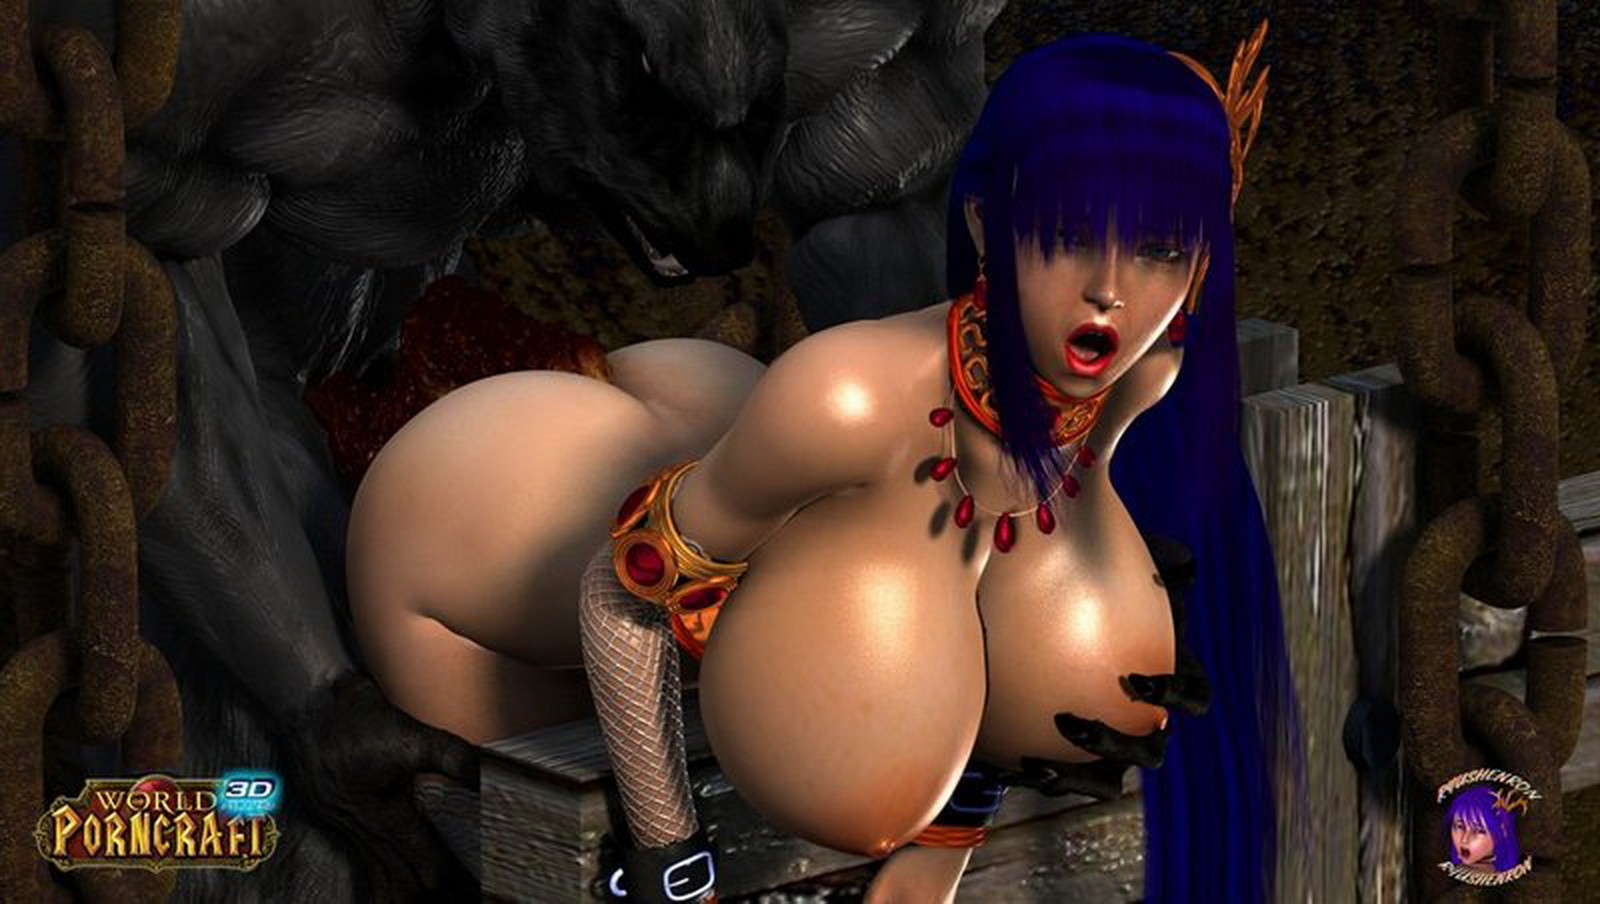 3d world of porncraft video adult pics